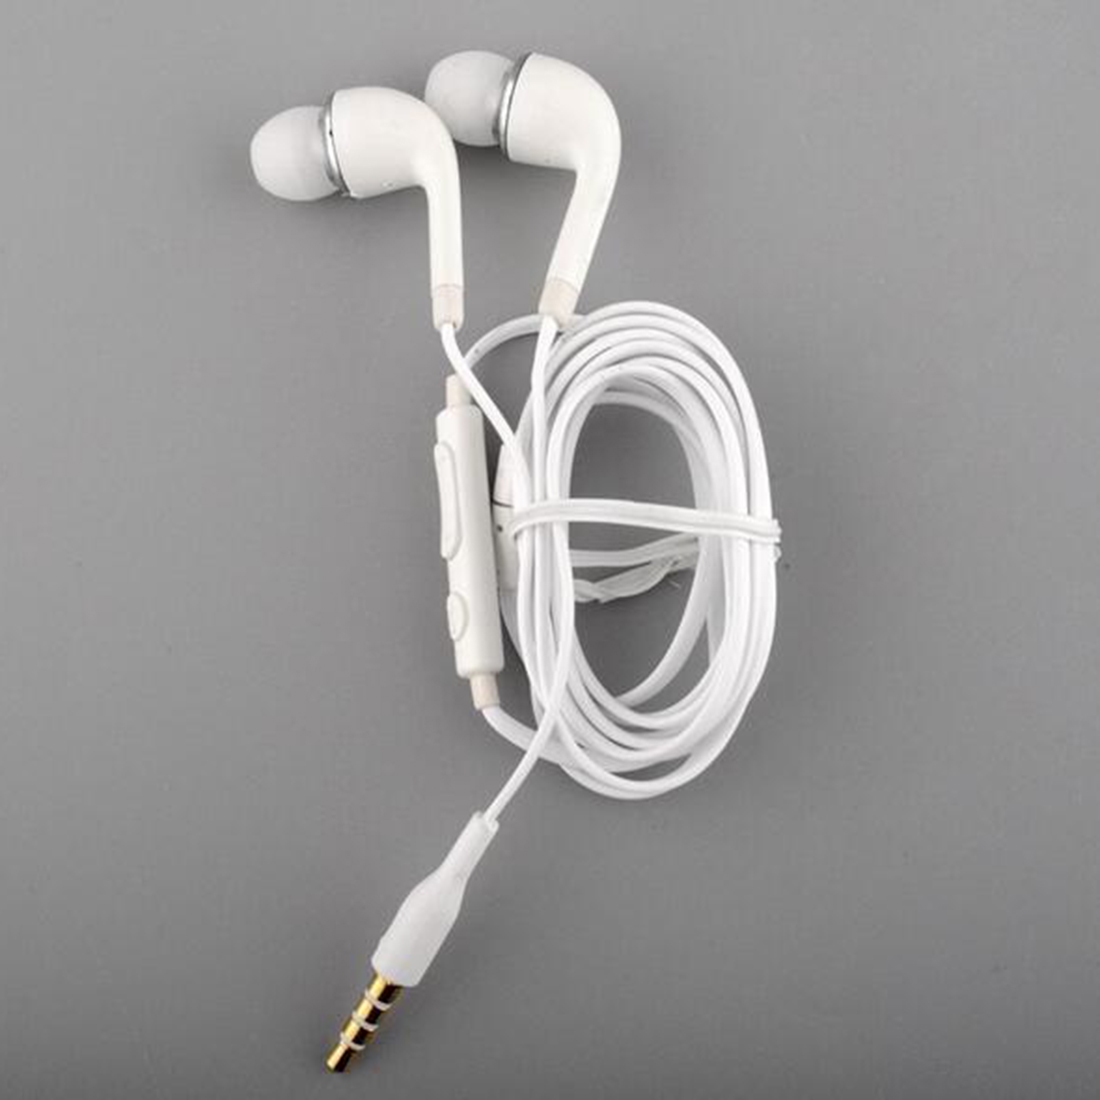 In-Ear Earphone For Samsung With Mic Wired Control In Ear Earphone Phone Earphones For Samsung Galaxy S4 S3 S2 S5 s6 s7 Note 2 teamyo portable in ear earphone stereo music handsfree headset with mic volume control for samsung galaxy s2 s3 s4 note3 n7100